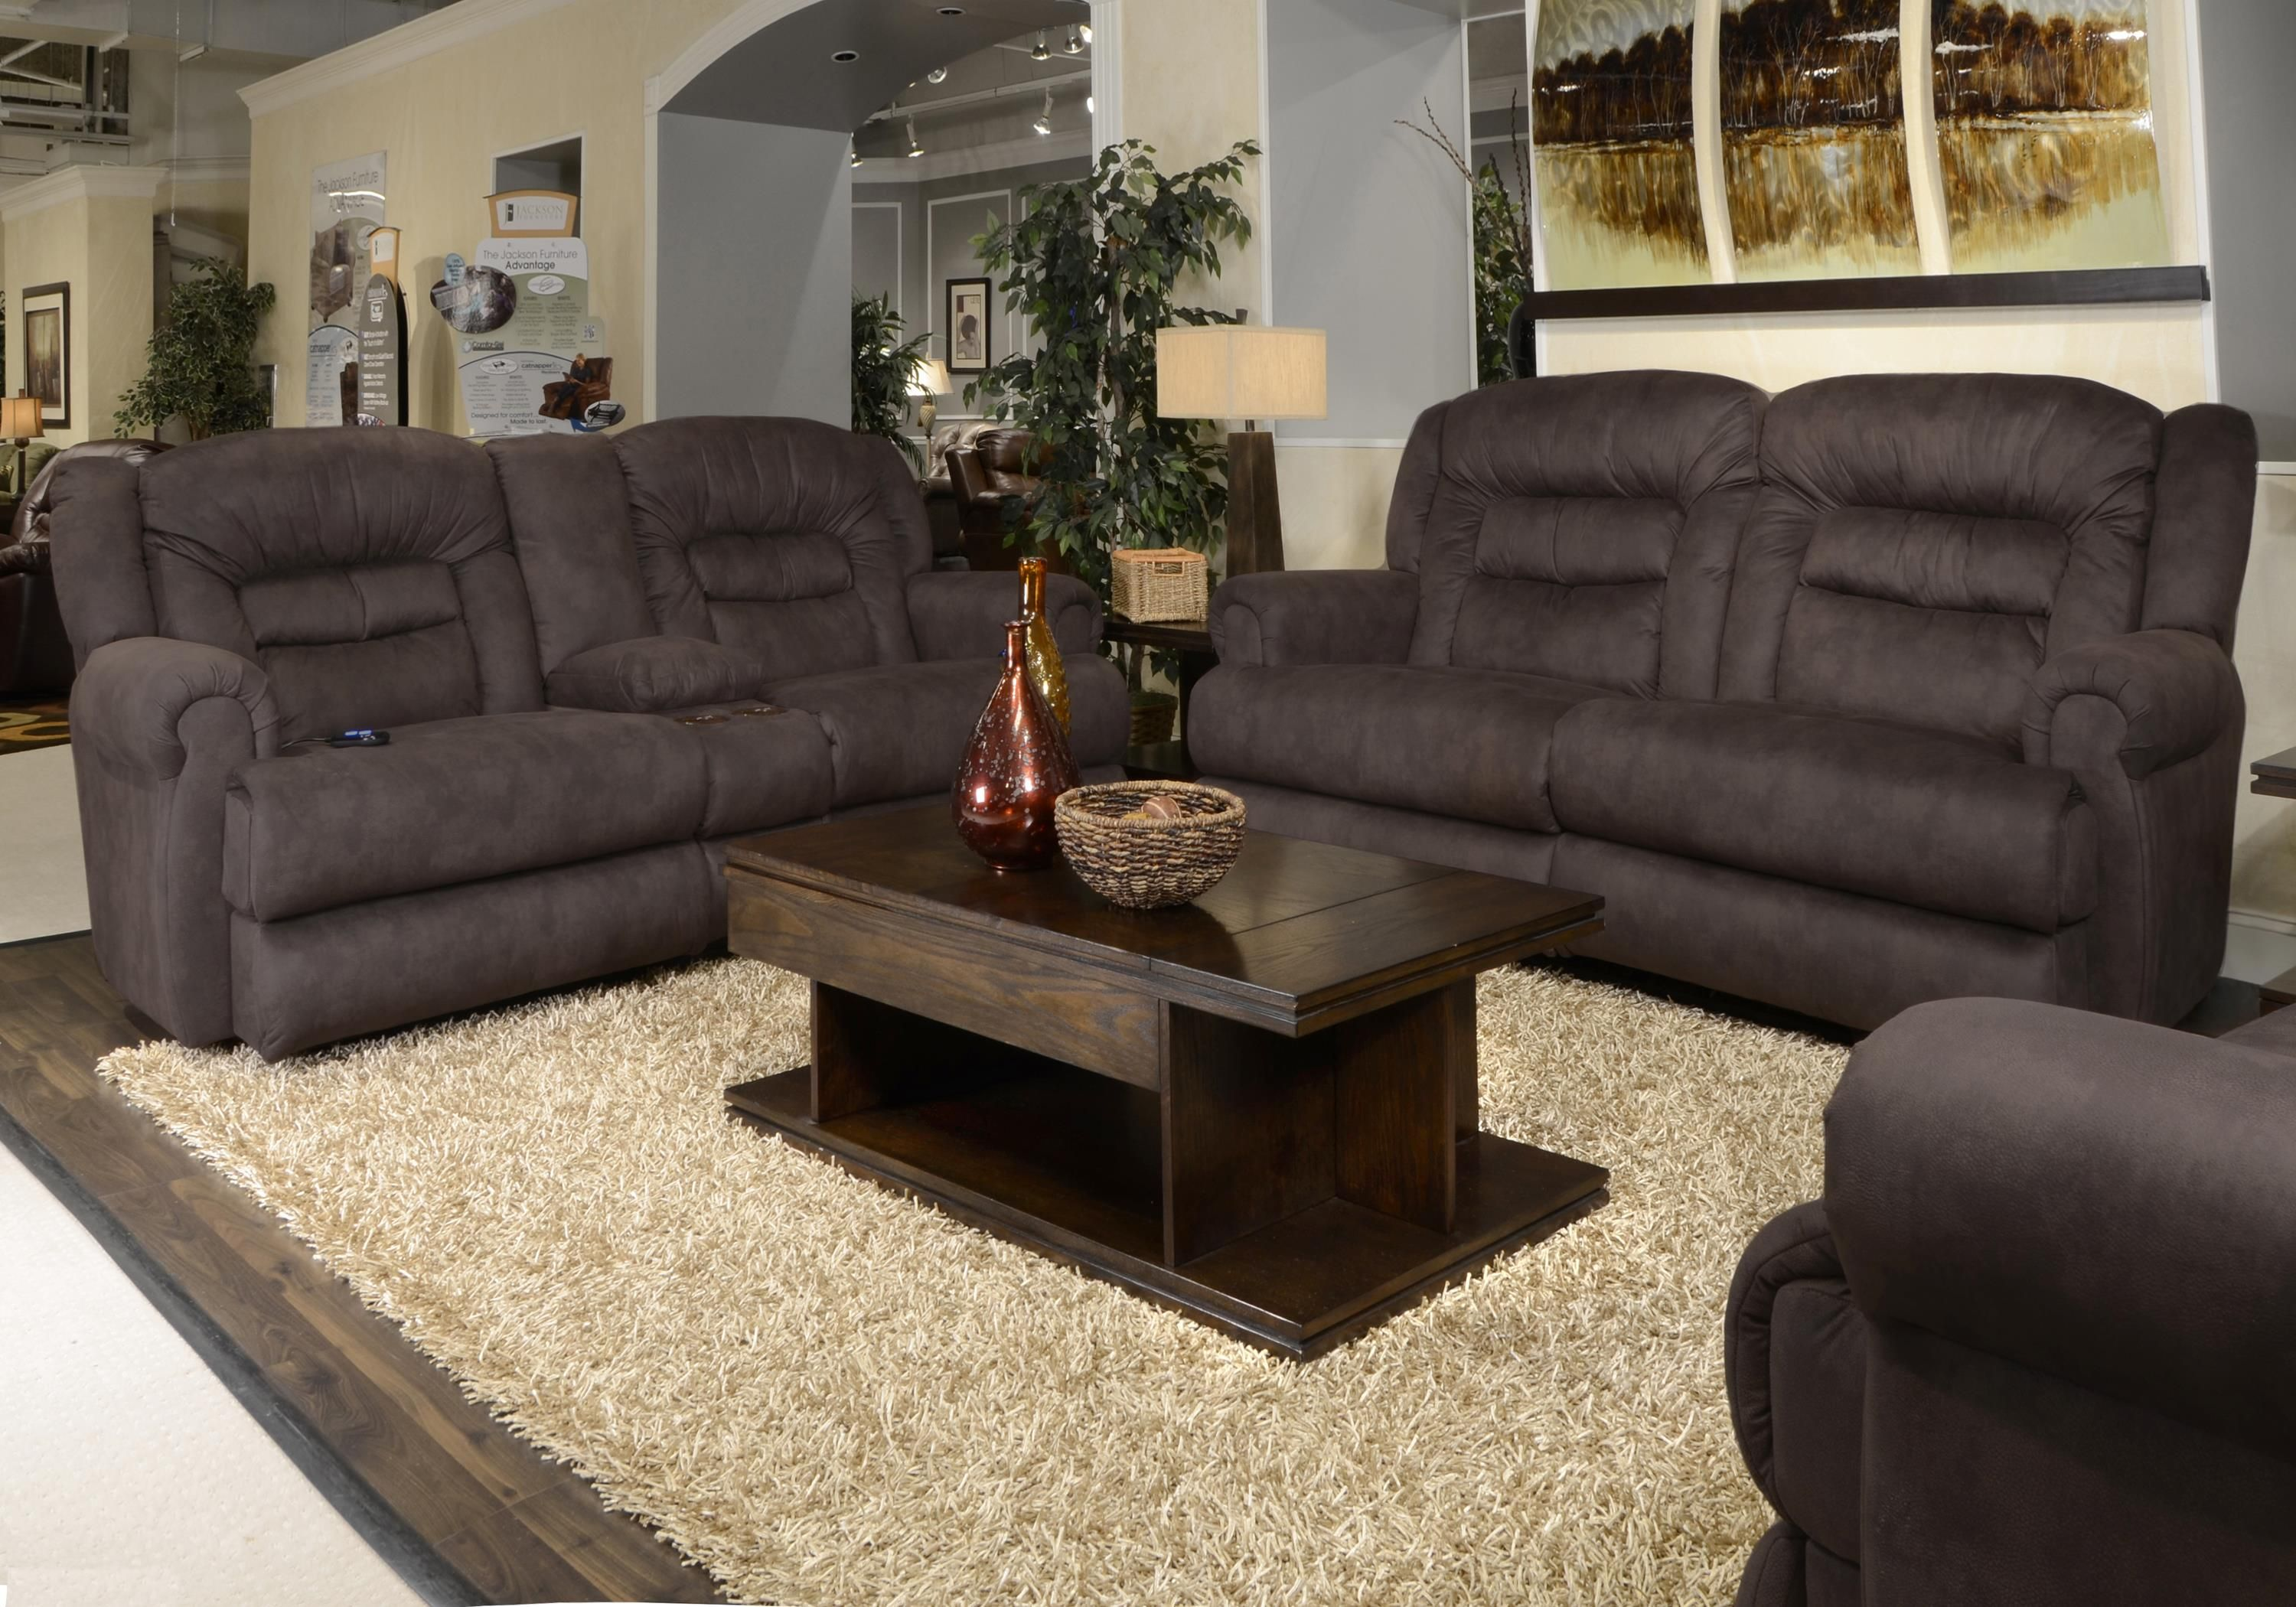 50 best living room images brothers furniture pull out sofa bed rh pinterest com